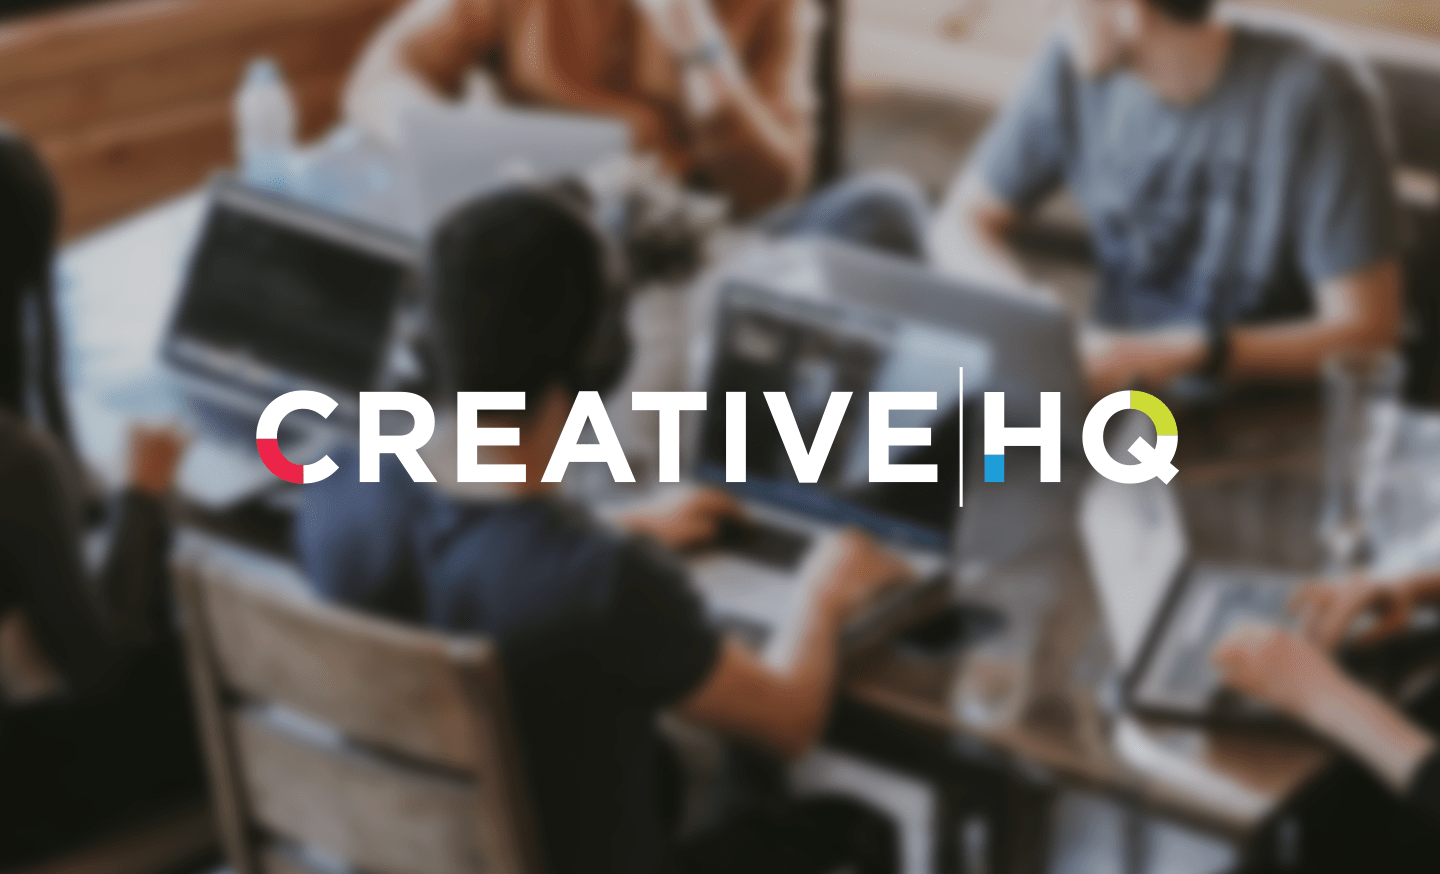 Creative HQ feed image